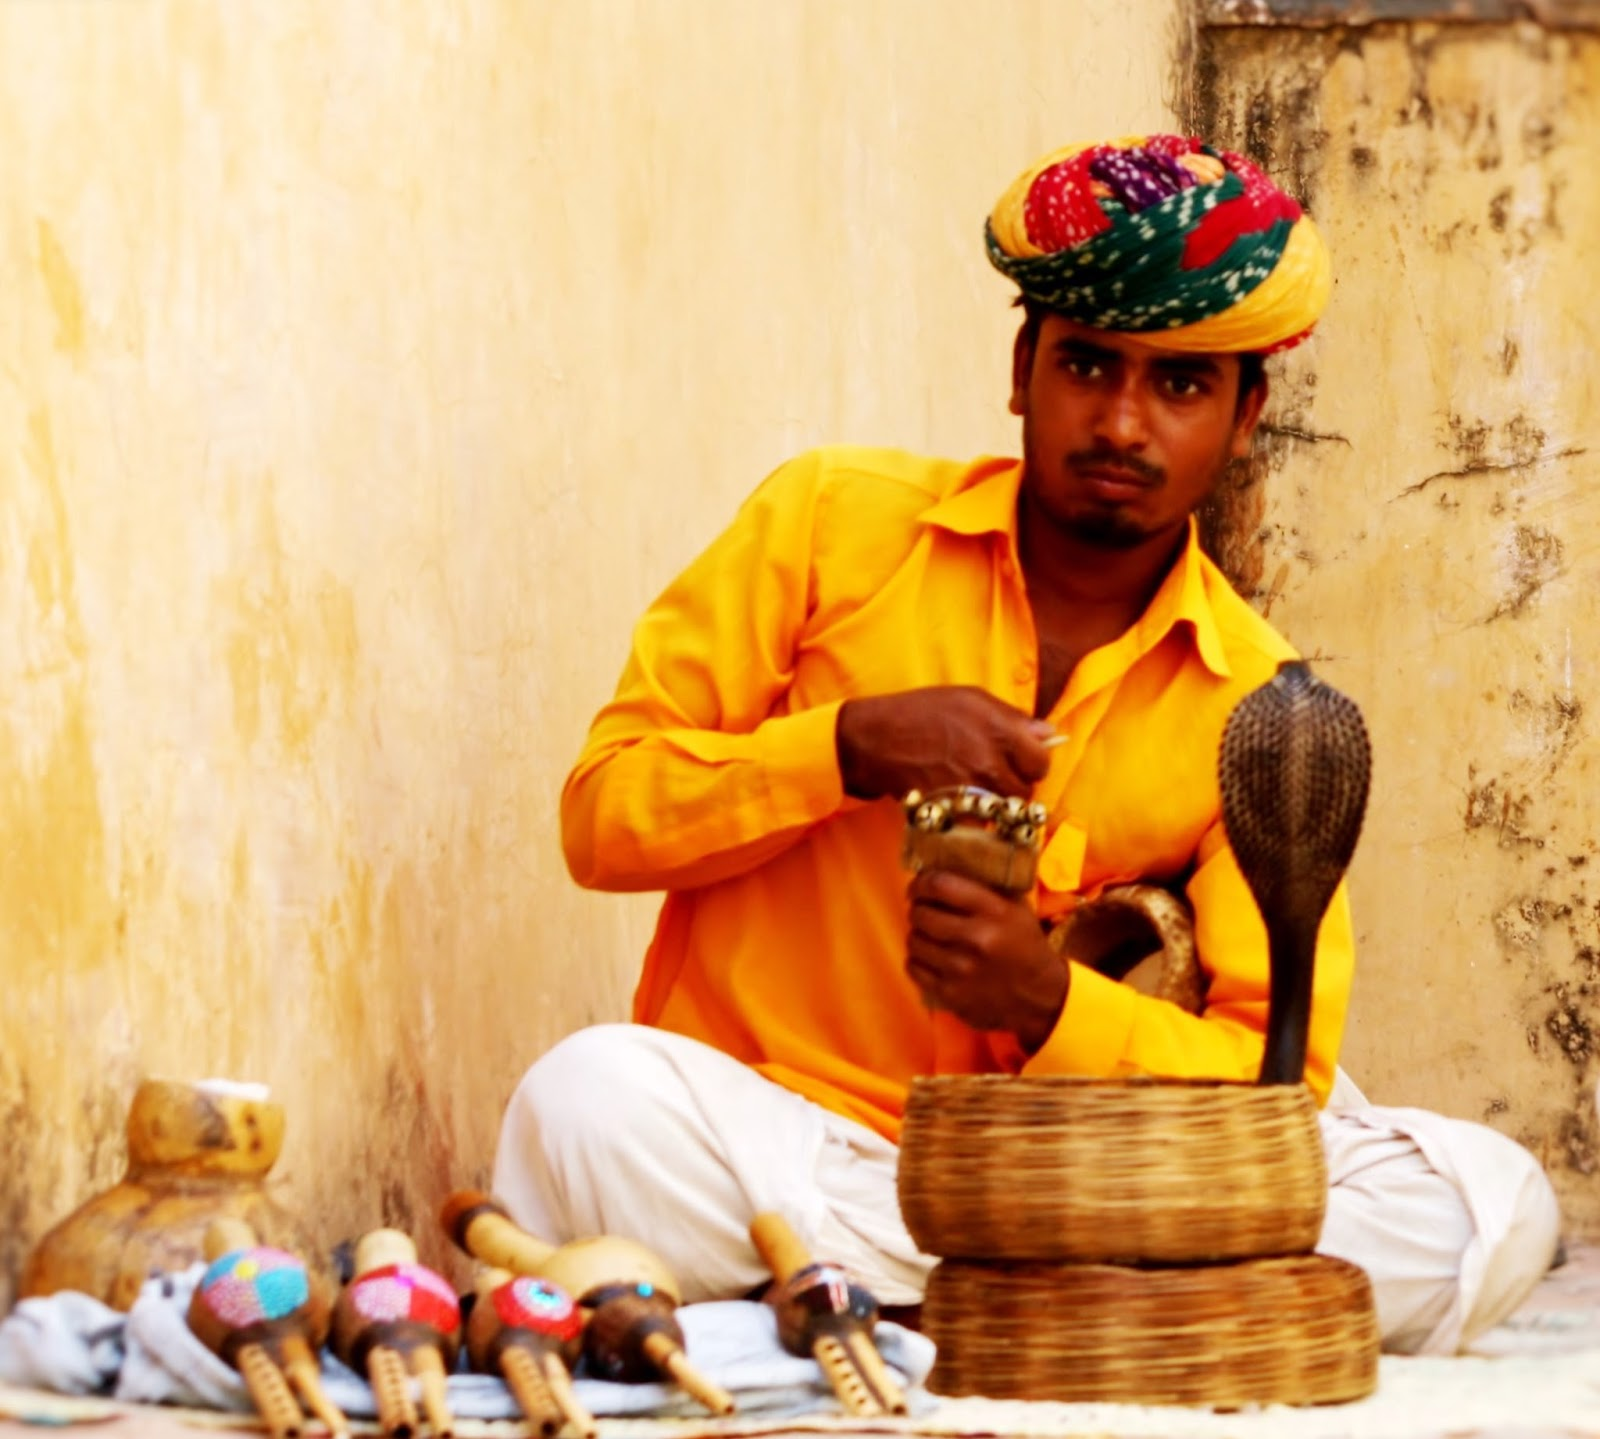 Snake Charmers of India - Enigmatic India